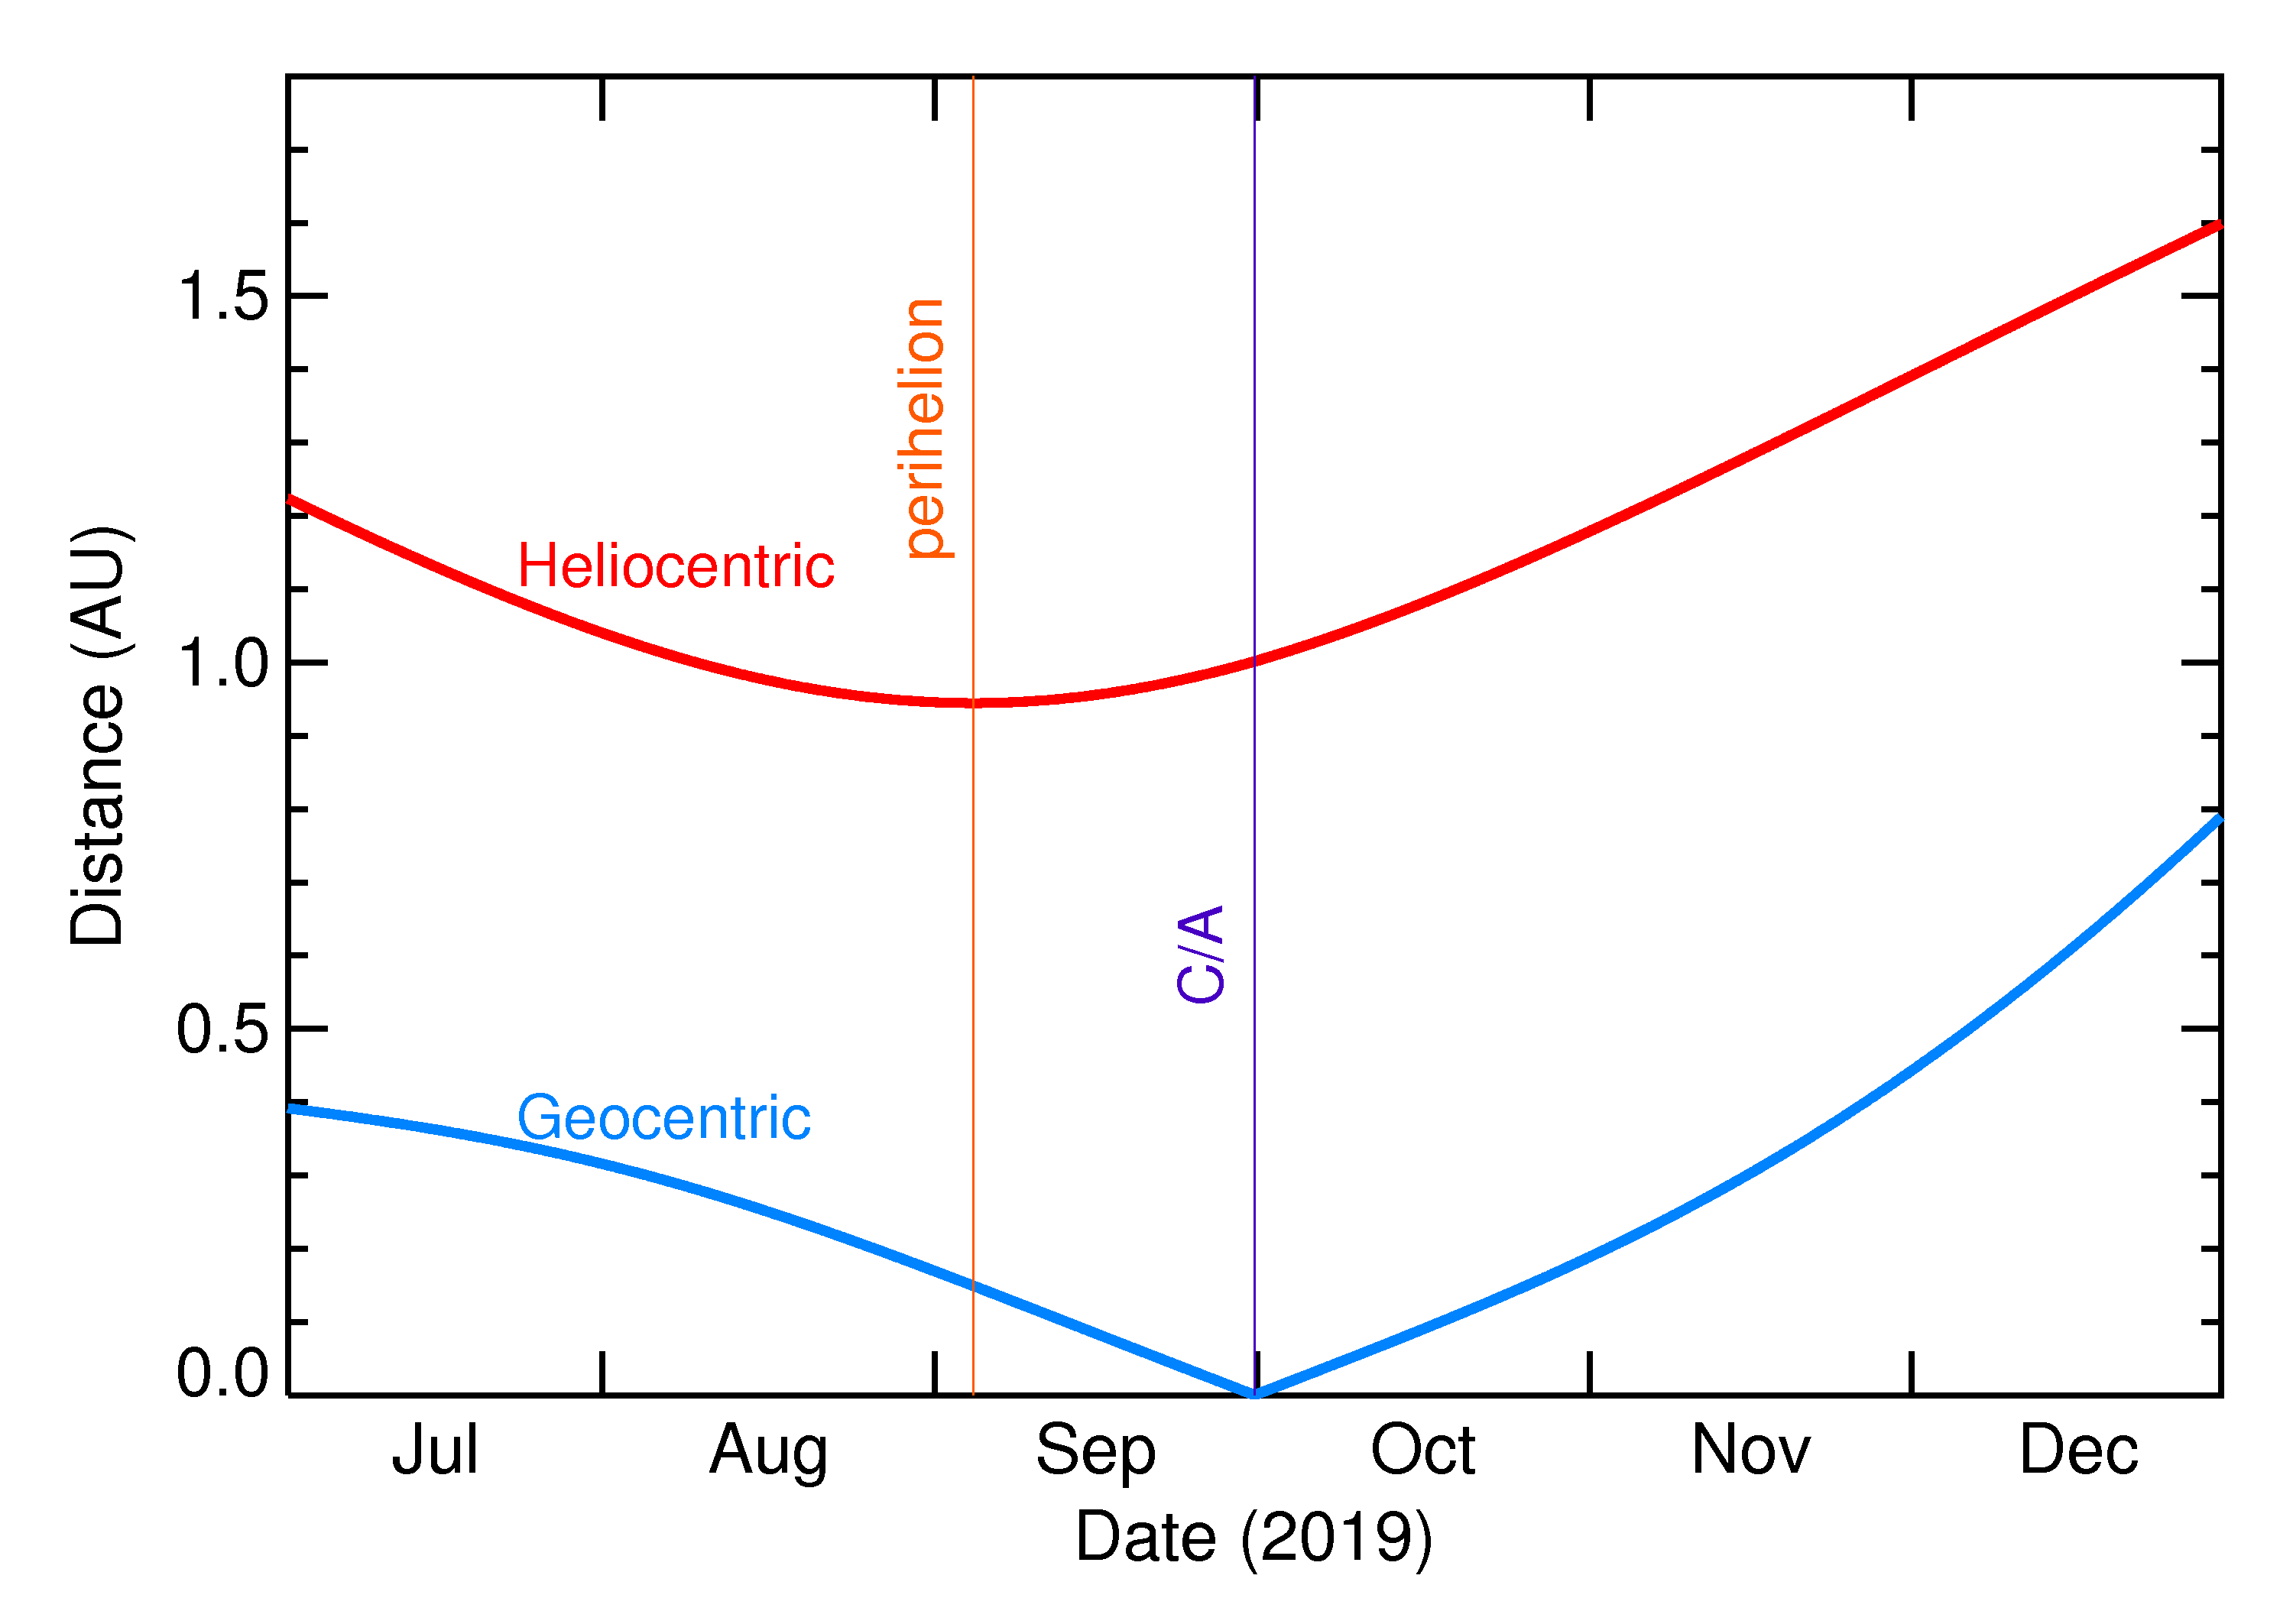 Heliocentric and Geocentric Distances of 2019 TD in the months around closest approach